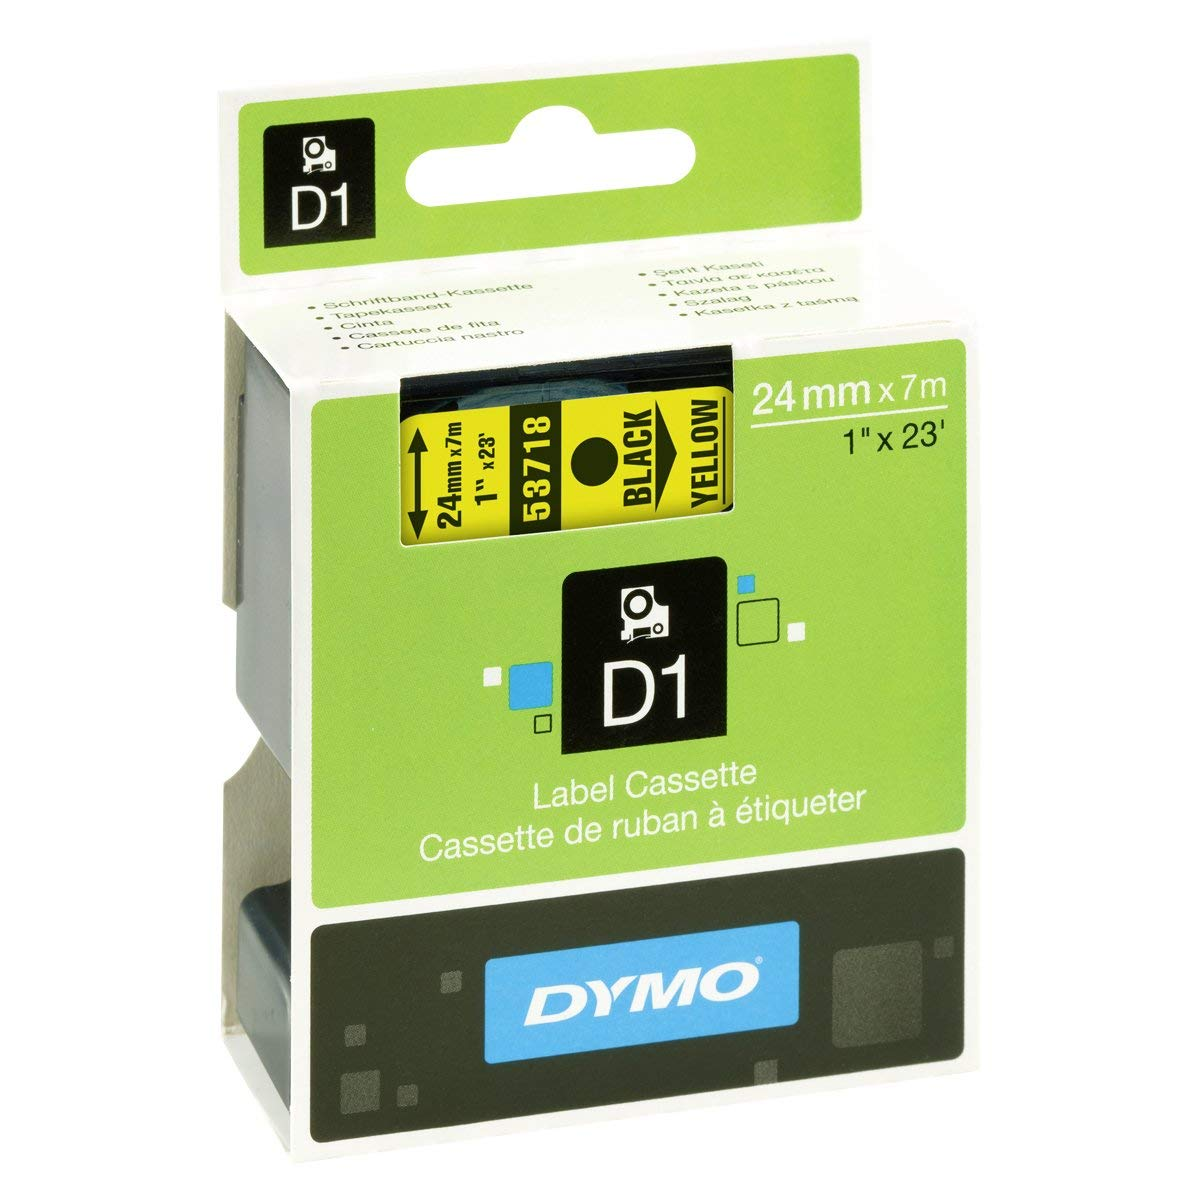 Dymo S0720980 D1 Standard Self-Adhesive Label Tape 24mm x 7m - Black on Yellow (pc)